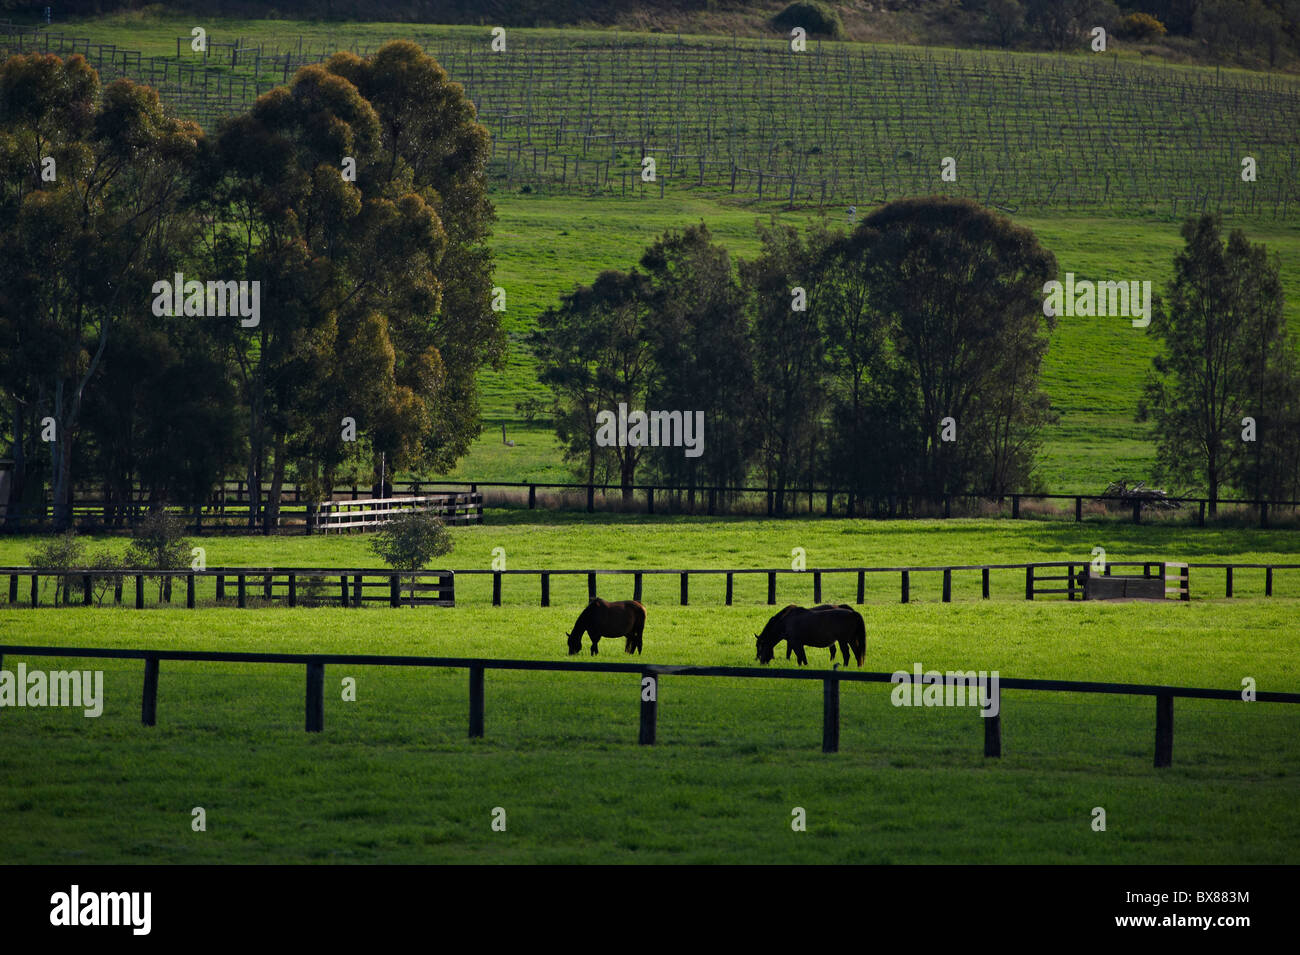 Horses grazing in lush pastures - Stock Image